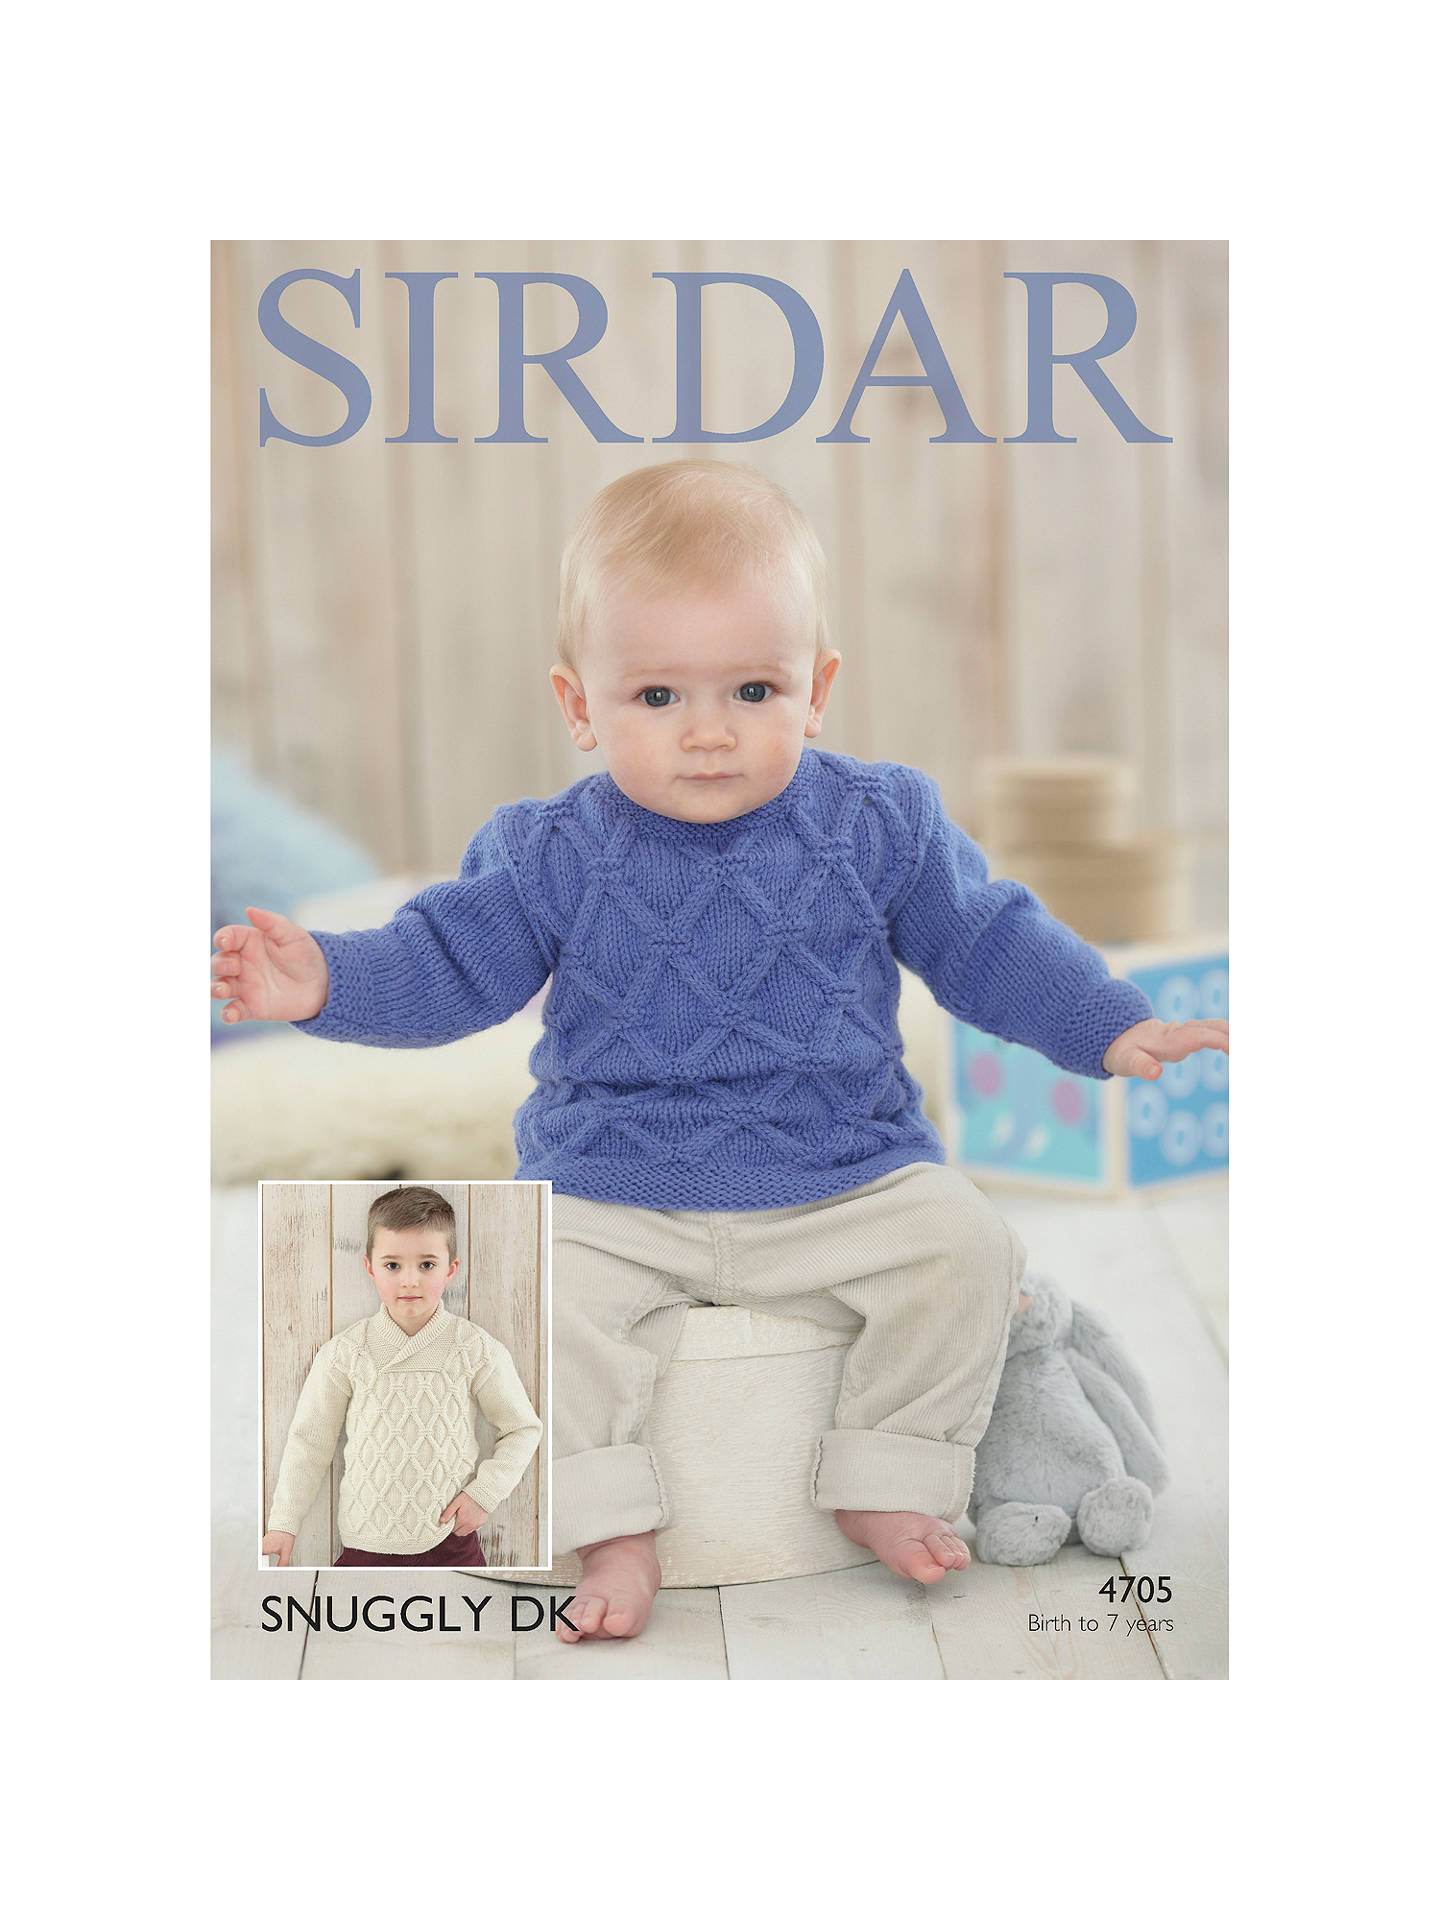 d45c3d383fa Sirdar Snuggly DK Baby and Child Jumper Knitting Pattern, 4705